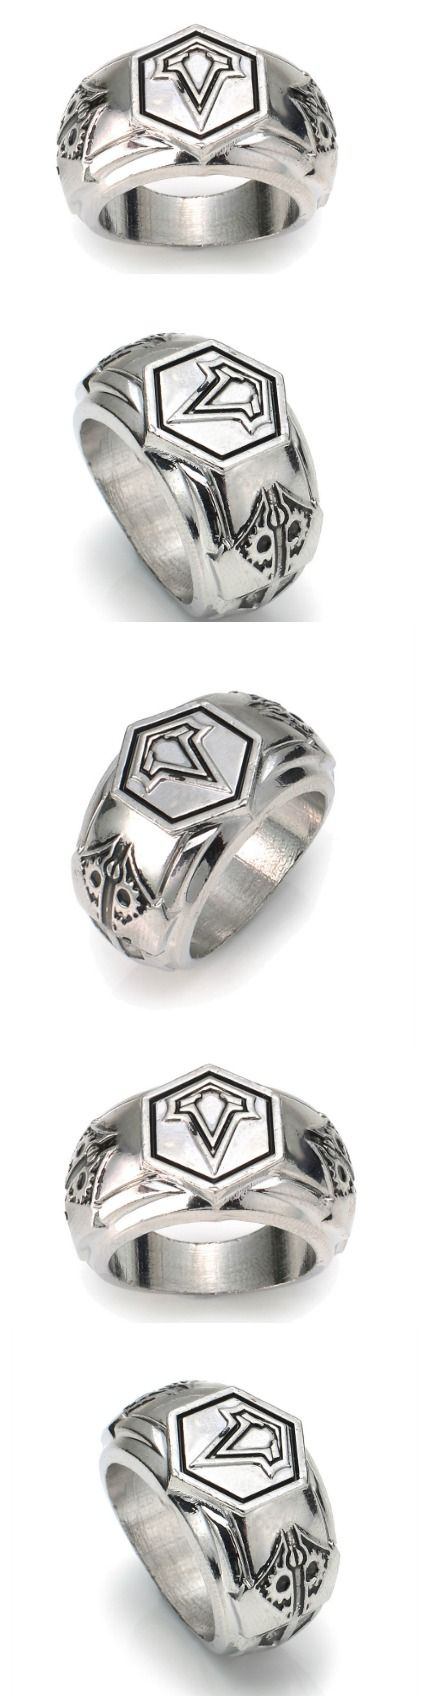 Assassins Creed Ezio Auditore Altair Edward Kenway Ring! Click The Image To Buy It Now or Tag Someone You Want To Buy This For. #AssassinsCreed